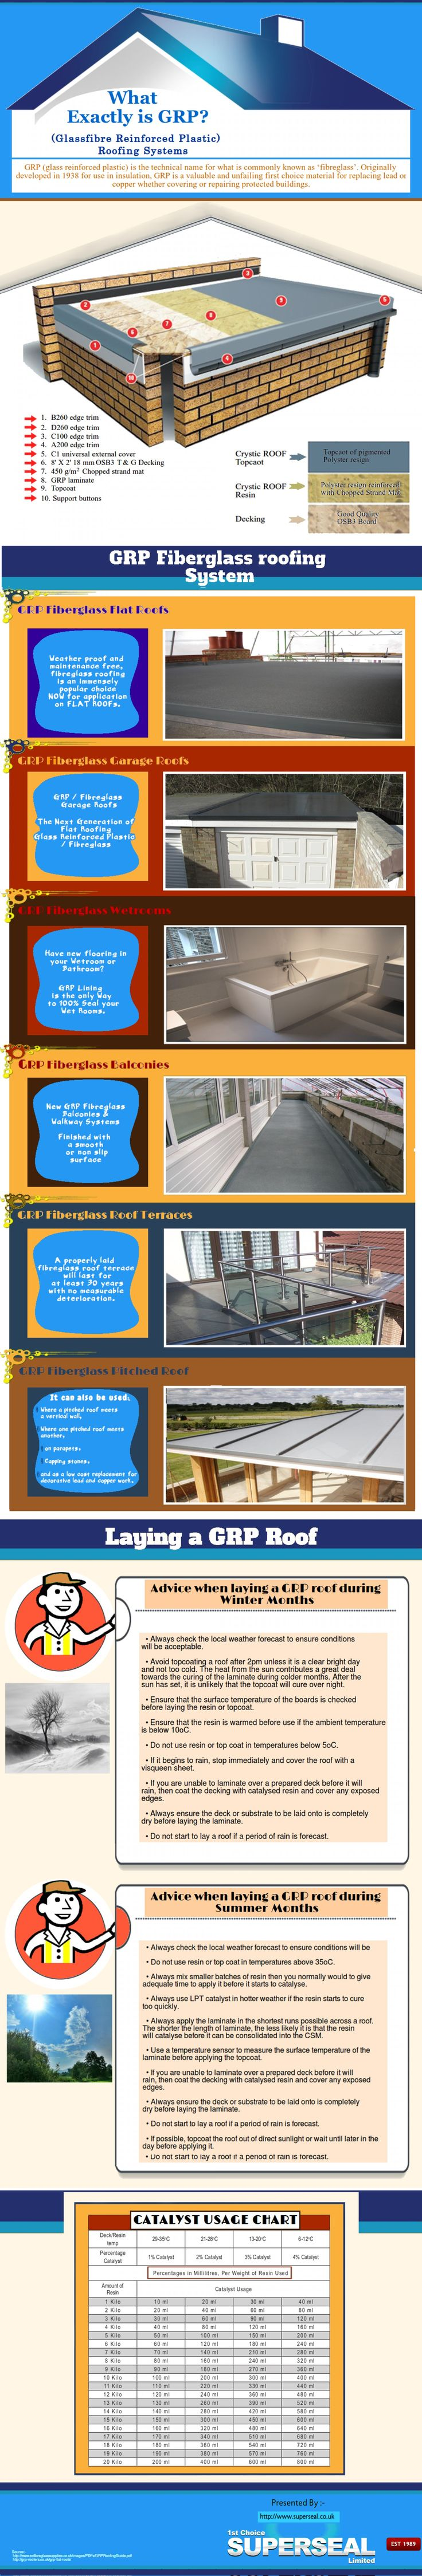 GRP (Glass Reinforced Plastic) roofing system delivers durable, robust roofing with a service life in excess of 30 years. GRP Fibreglass Roofing cover Flat Roofs, Garages Roofs, Balconies, Wetrooms etc.